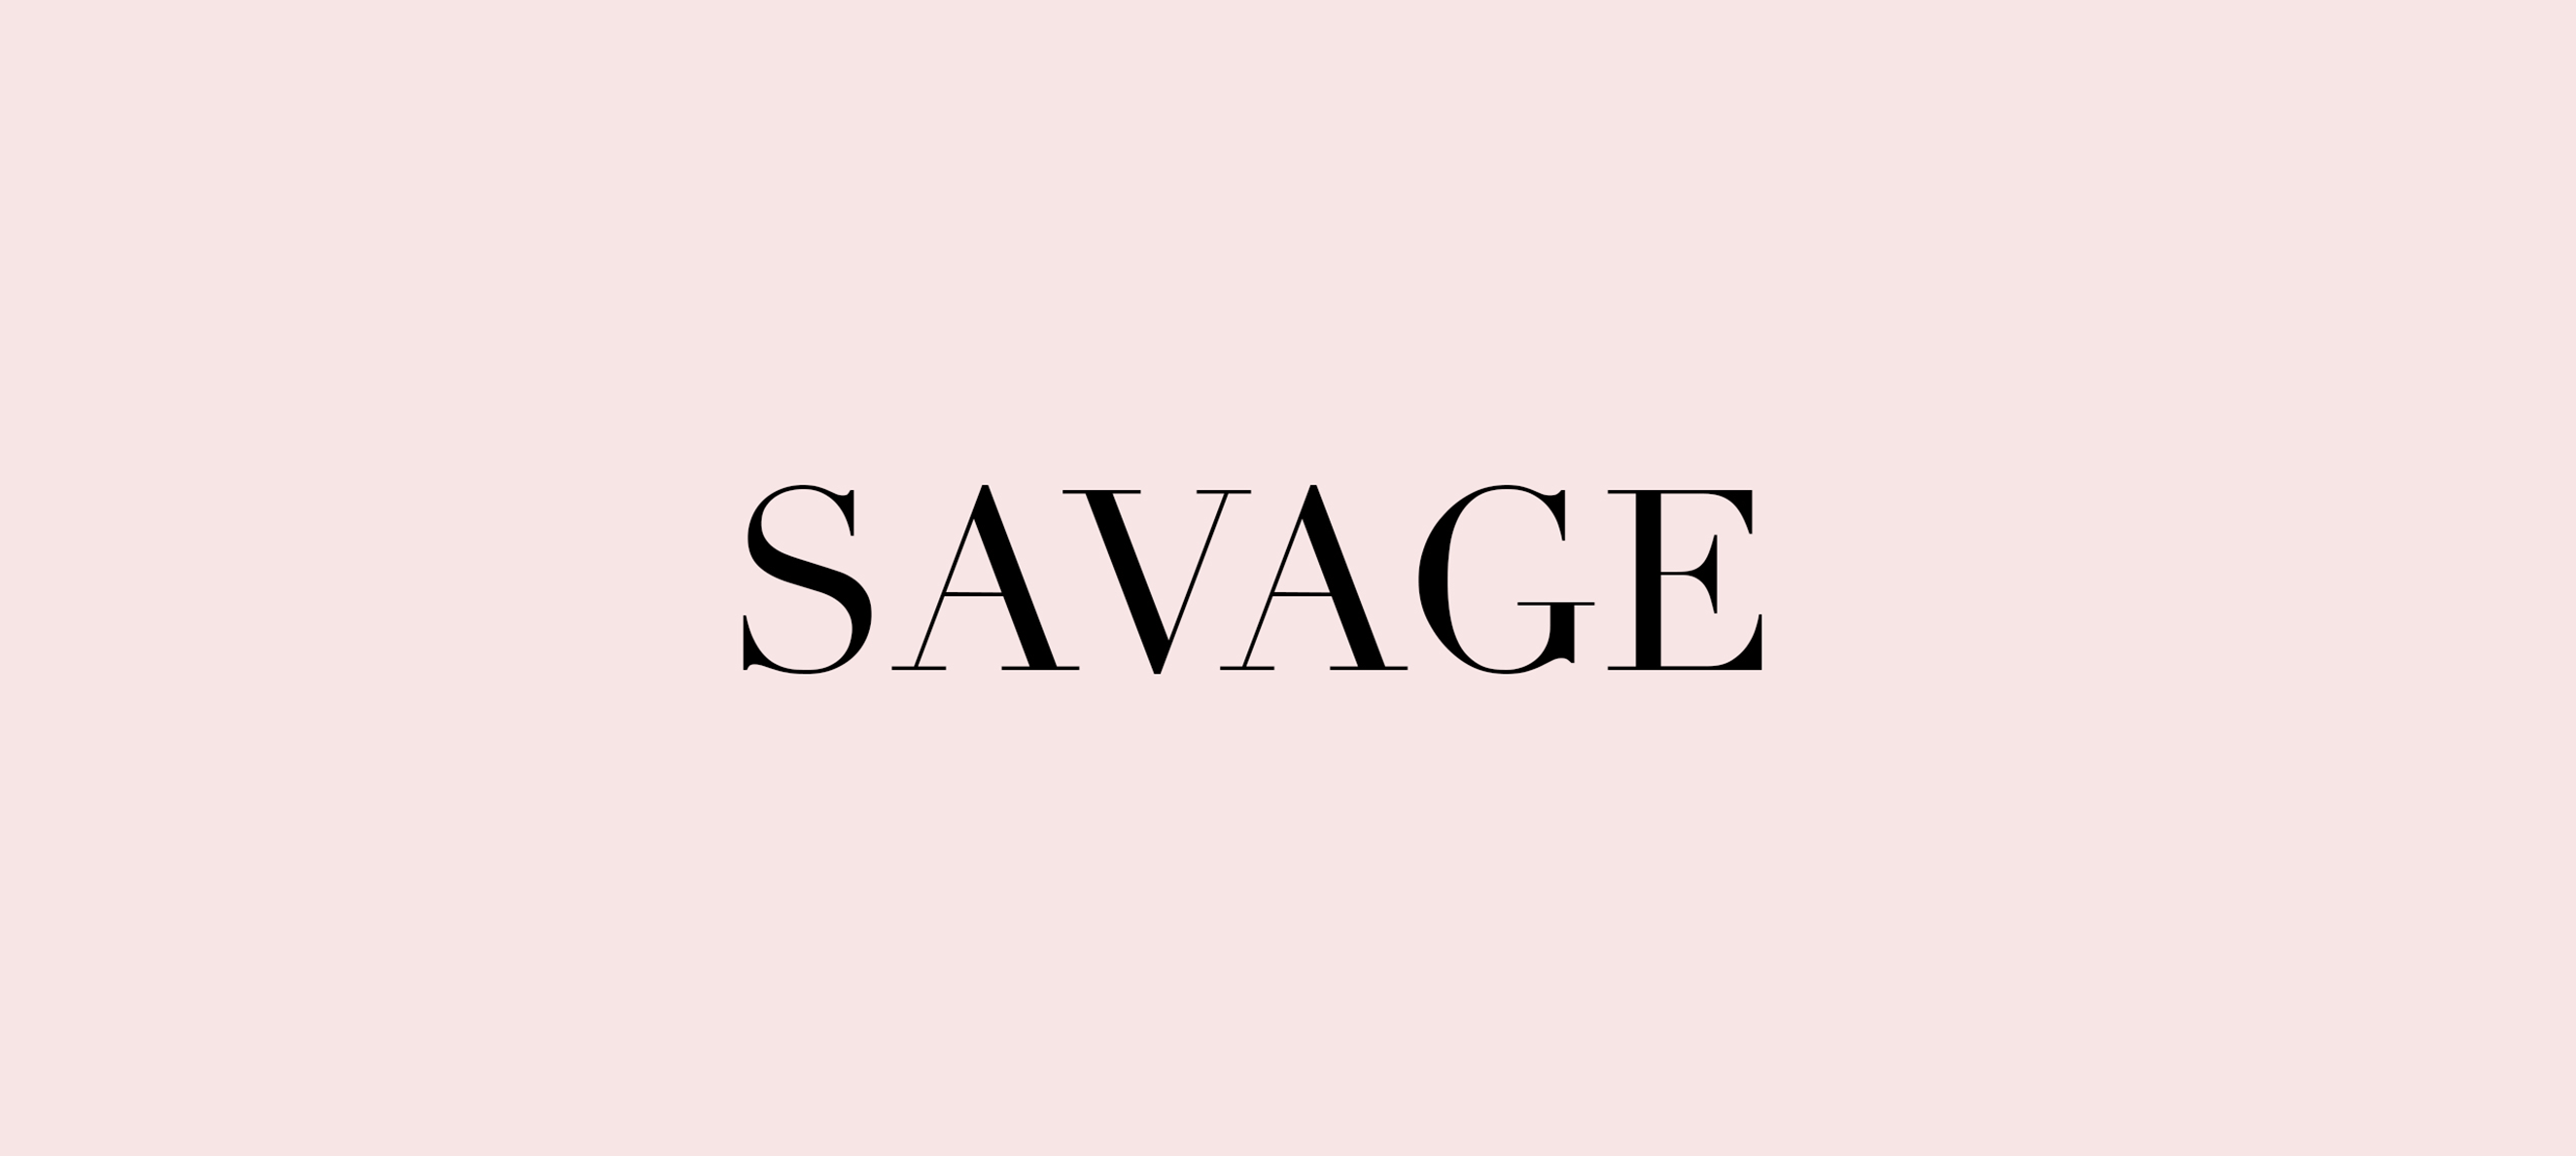 Cute Savage Wallpapers Top Free Cute Savage Backgrounds